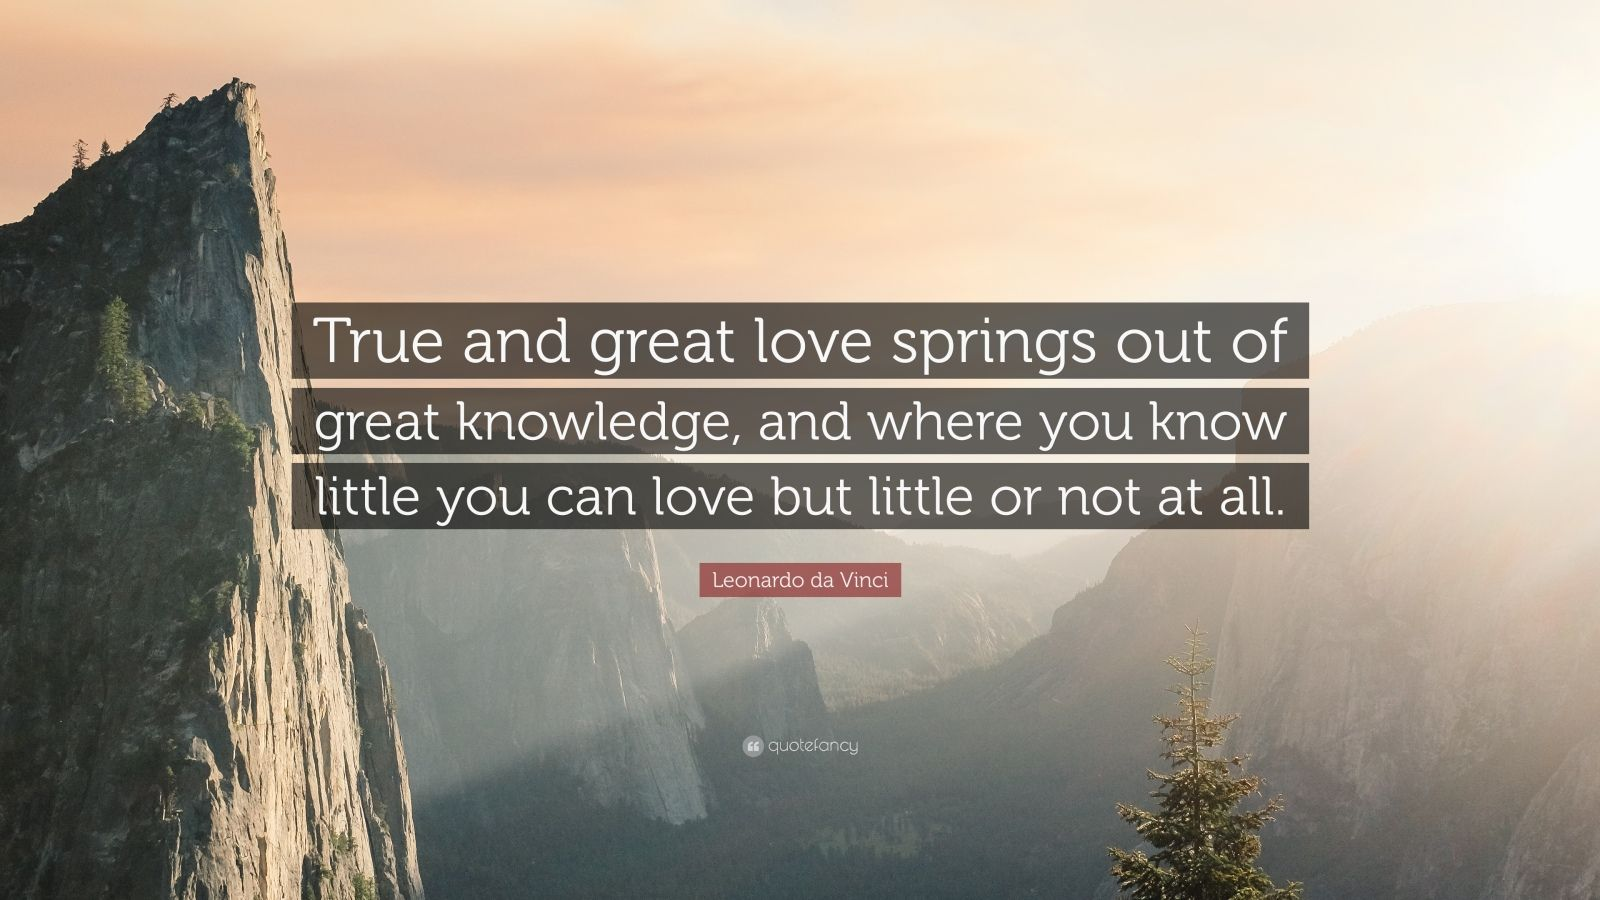 """Leonardo da Vinci Quote: """"True and great love springs out of great knowledge, and where you know little you can love but little or not at all."""""""